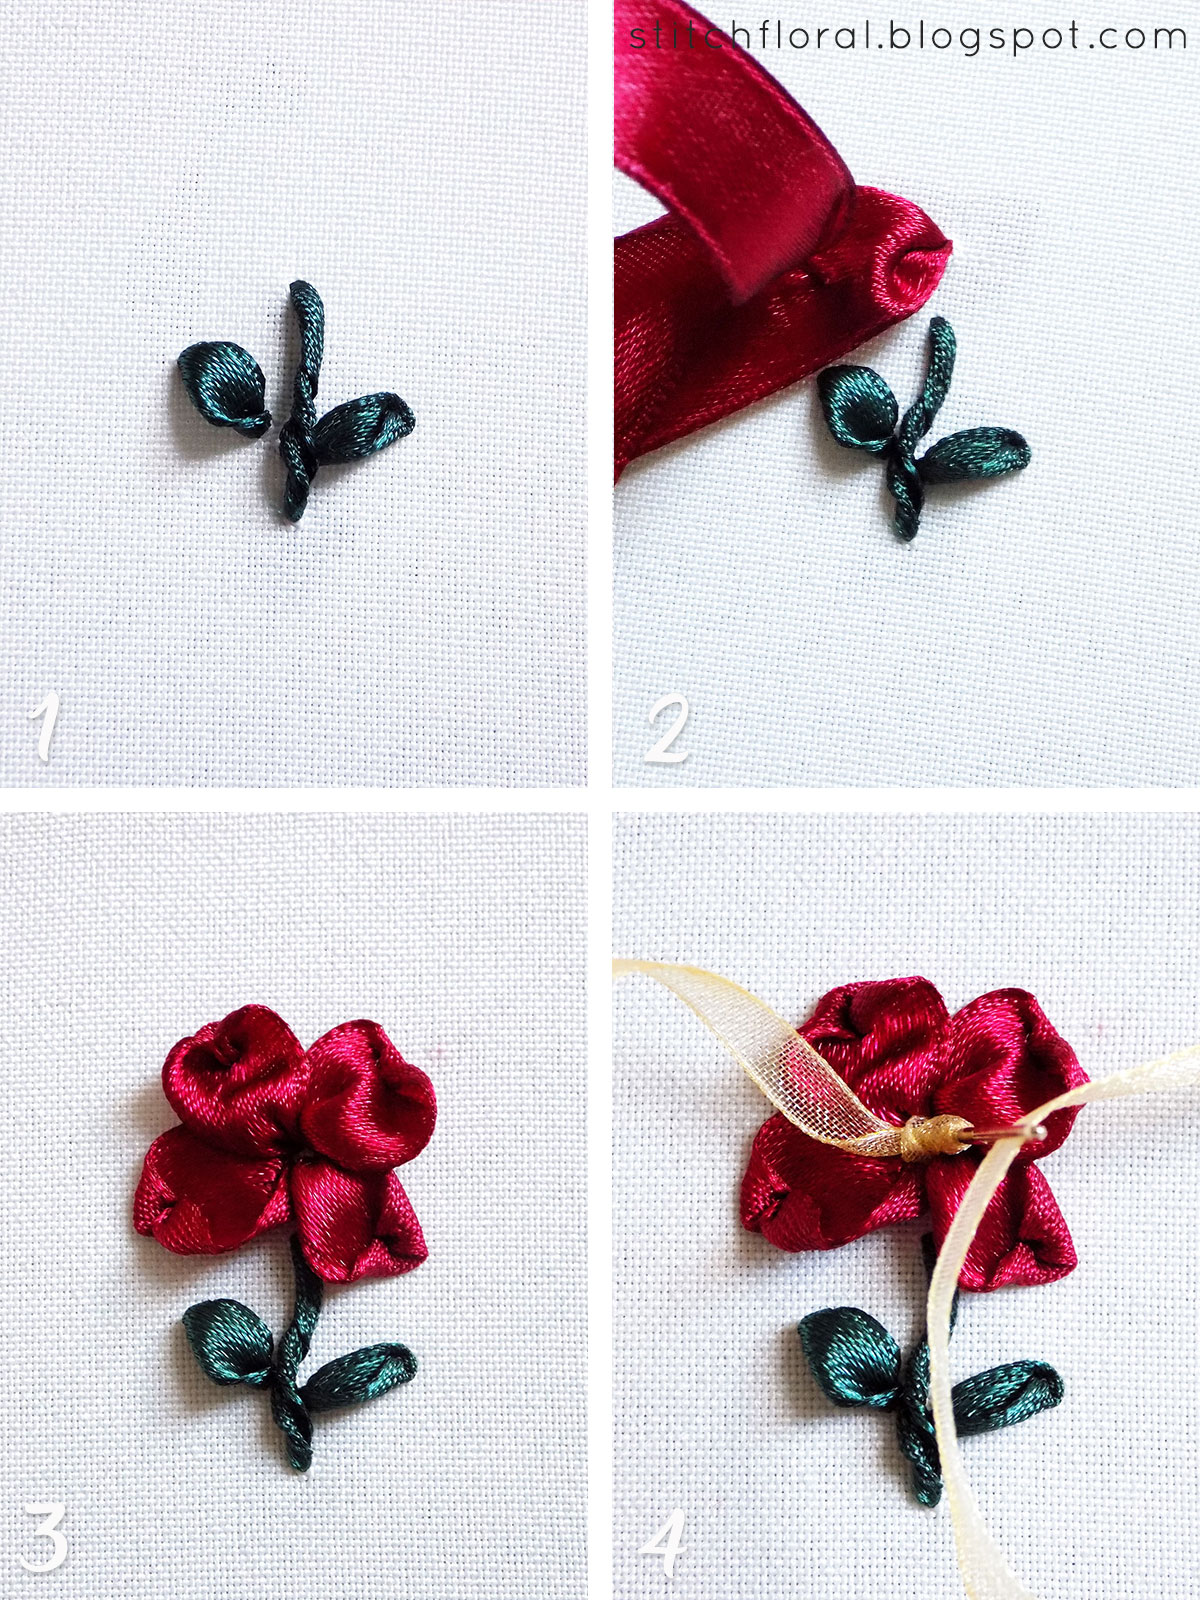 5 basic stitches for ribbon embroidery